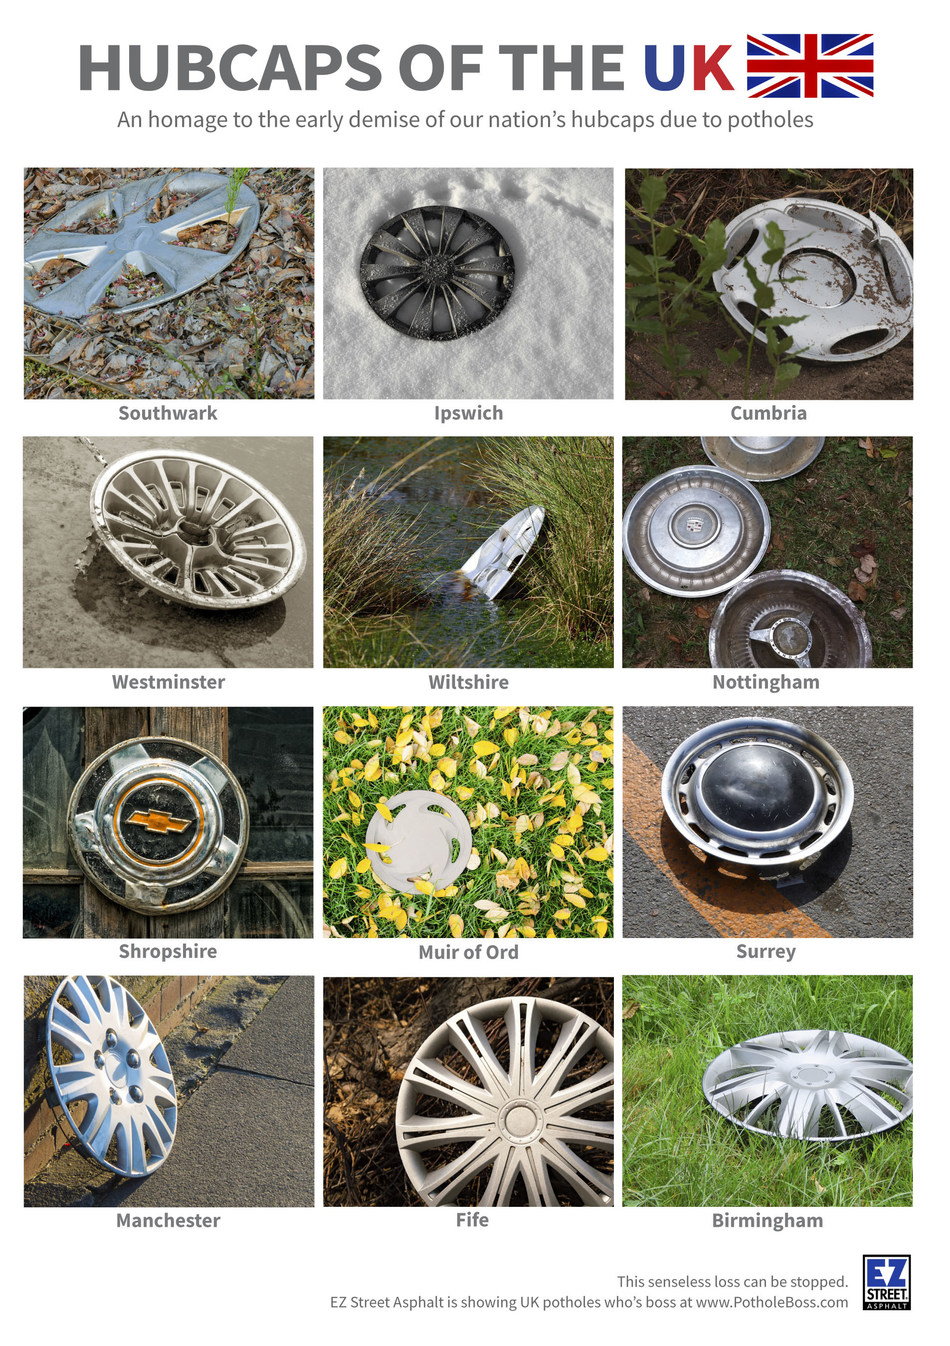 This homage to lost hubcaps of the UK is going out across the nation, and directing recipients to www.PotholeBoss.com